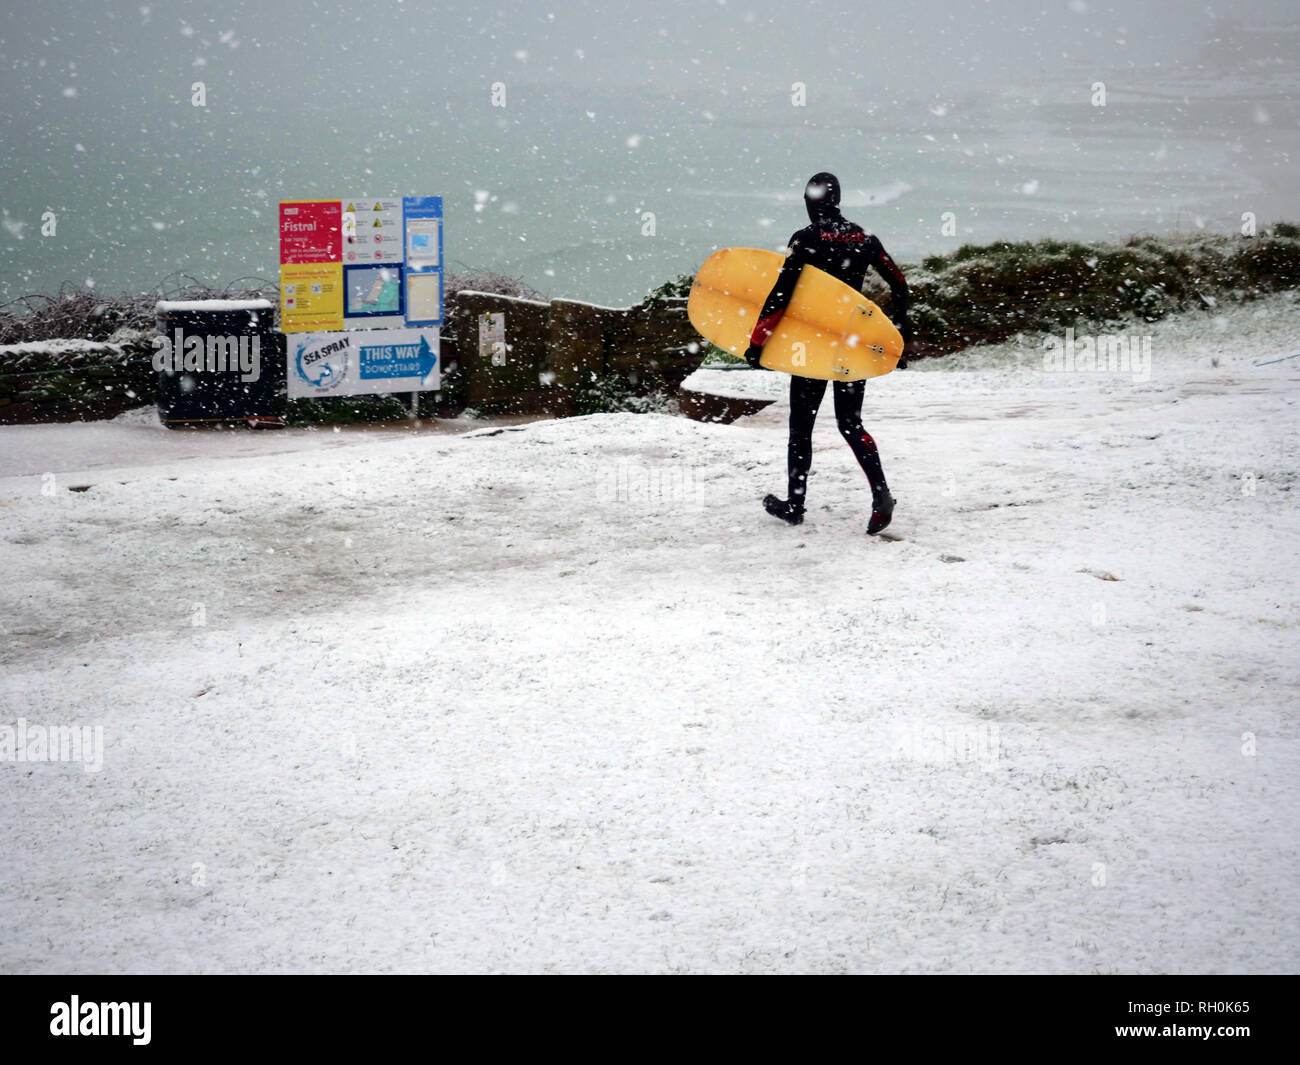 Newquay, Cornwall. 31st Jan 2019. UK Weather: Fistral Beach Surfer in the snow storm. Newquay, Cornwall, 31st January 2019. UK weather: Credit: Robert Taylor/Alamy Live News - Stock Image